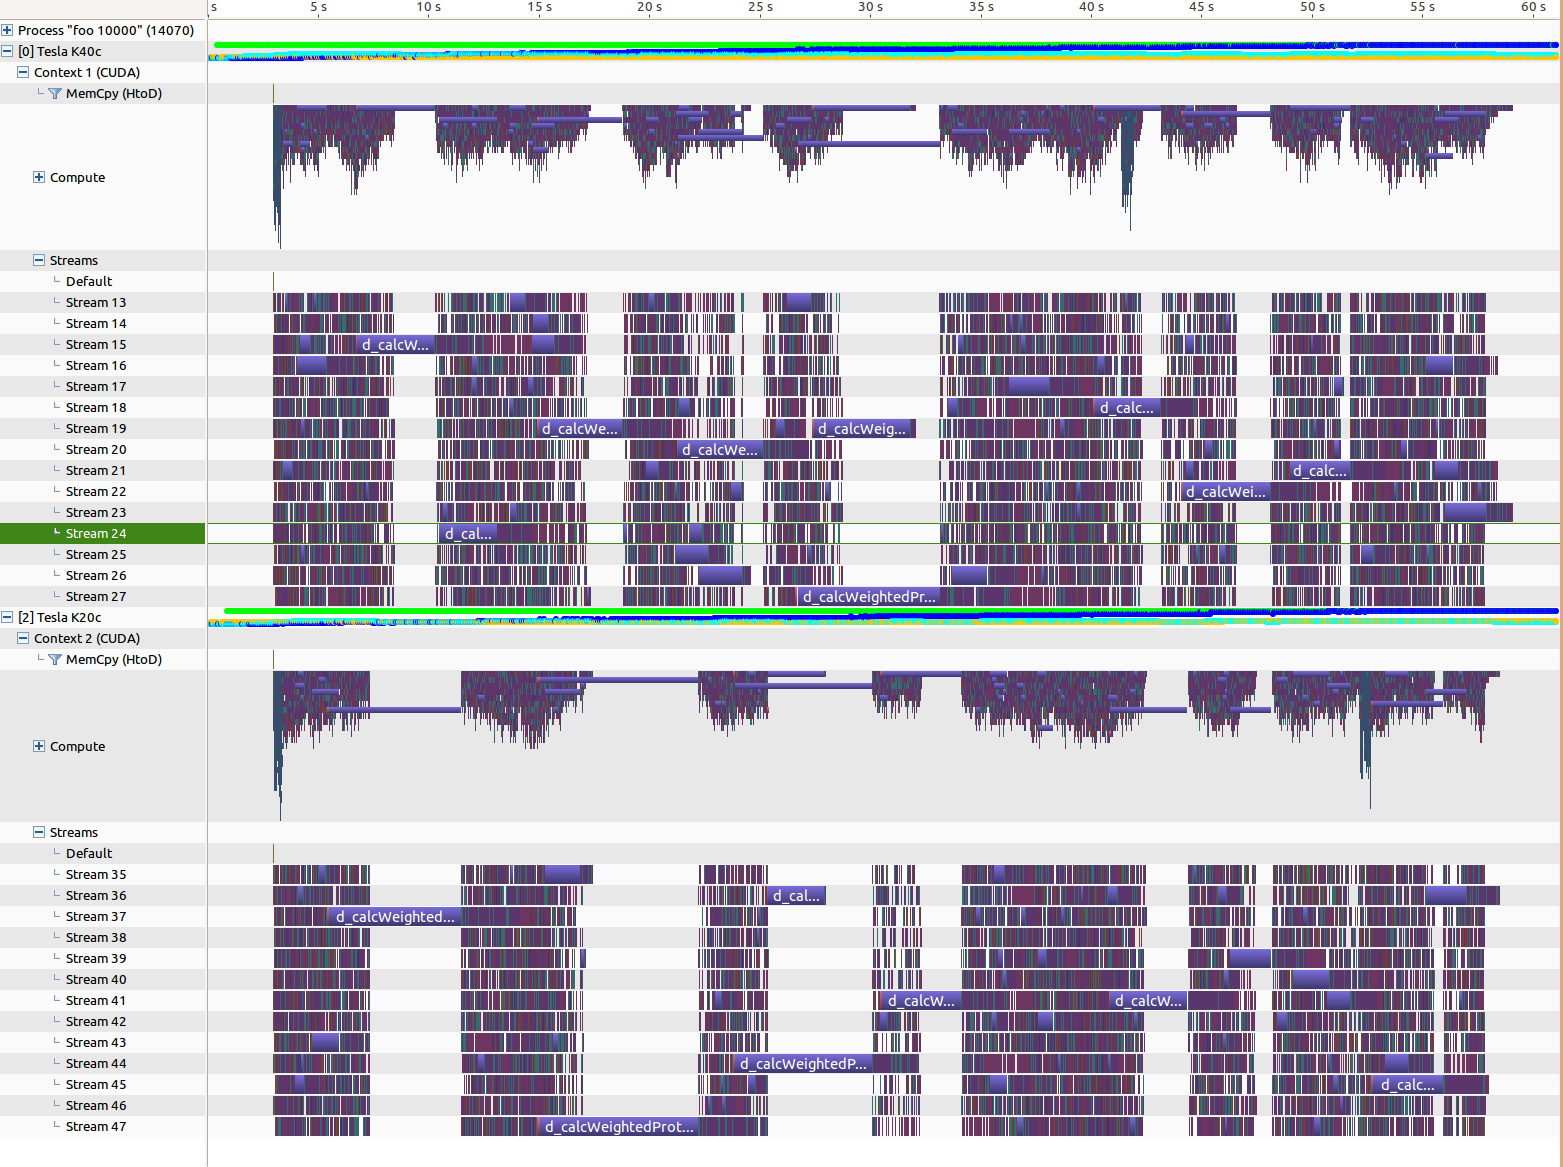 Screenshot_timeline_all_tuples_10k_MCW_no_event_destroy_or_create